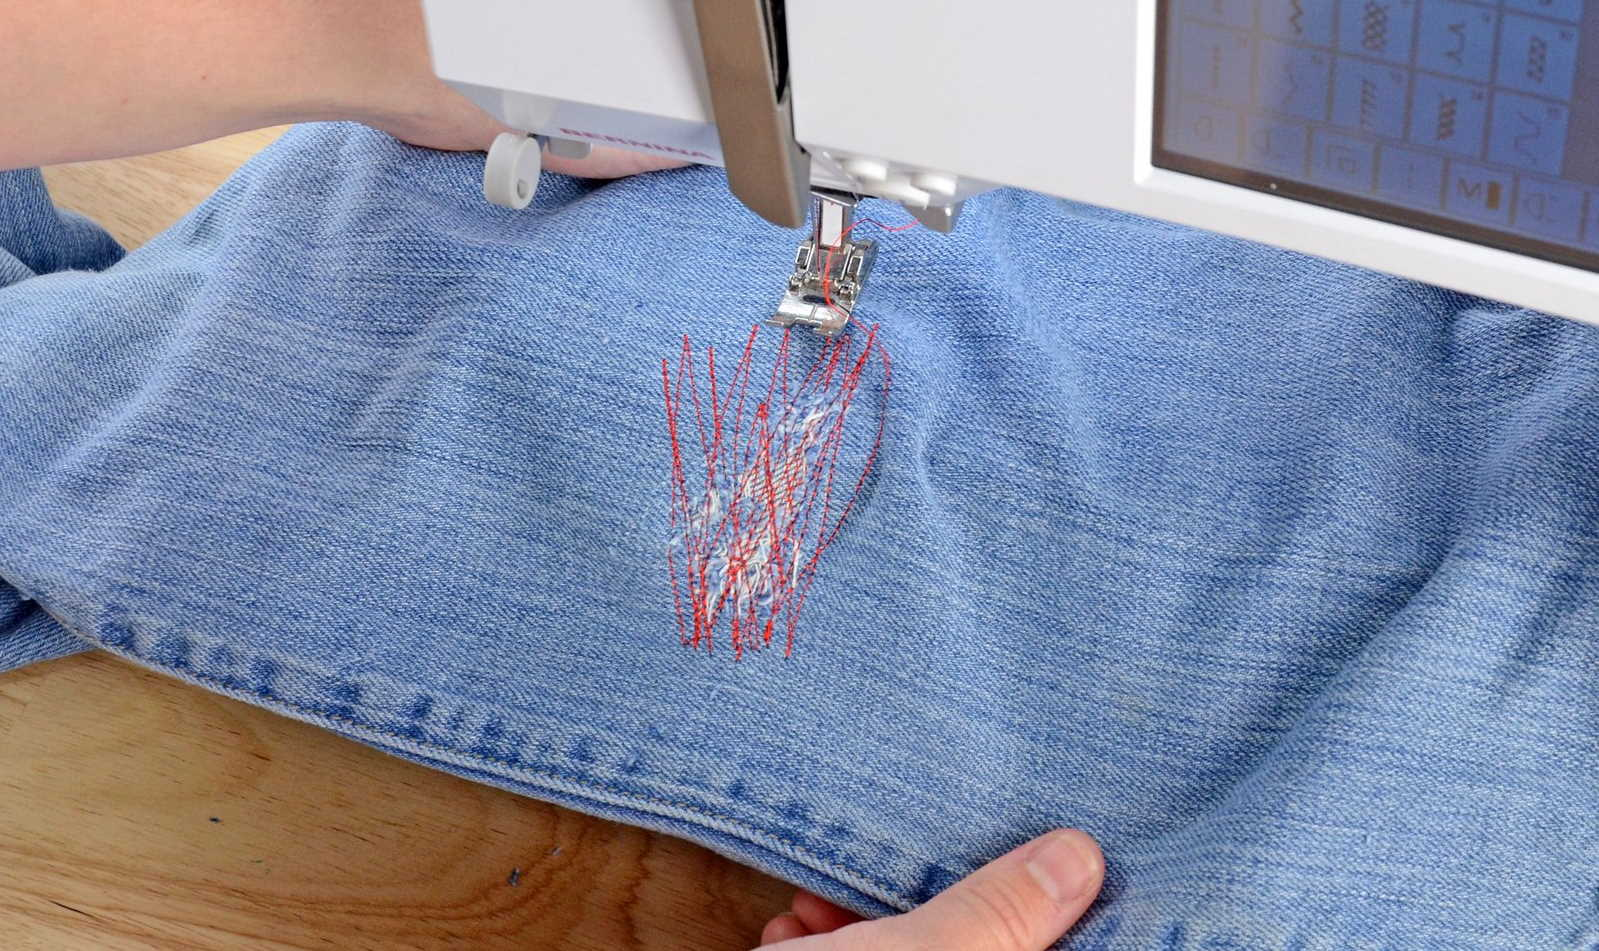 Zig-zag stitch on a hole in jeans